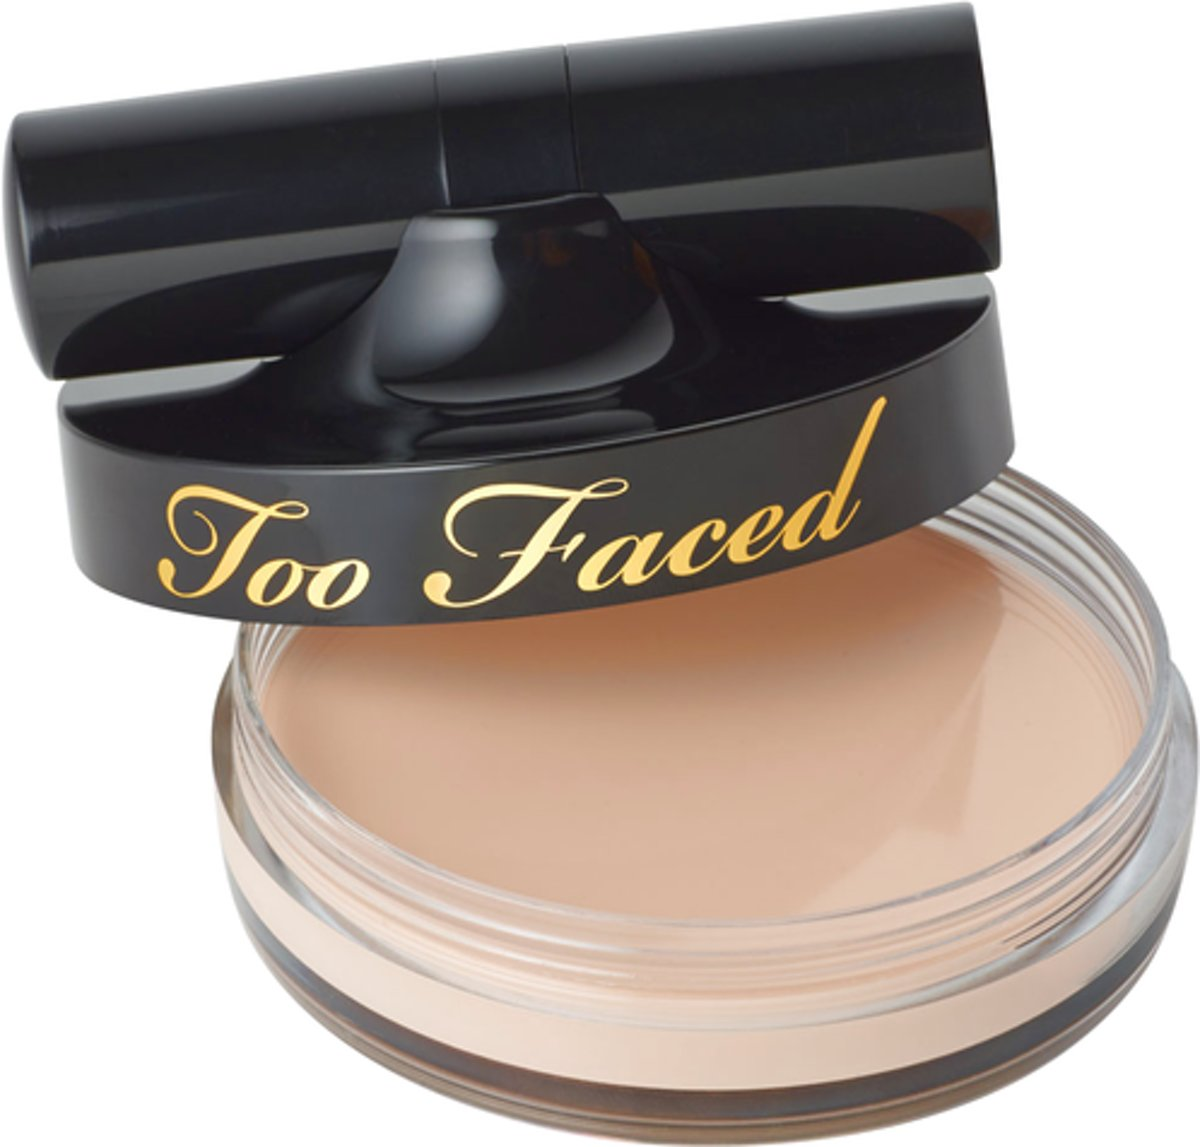 Air Buffed BB Creme Complete Makeup